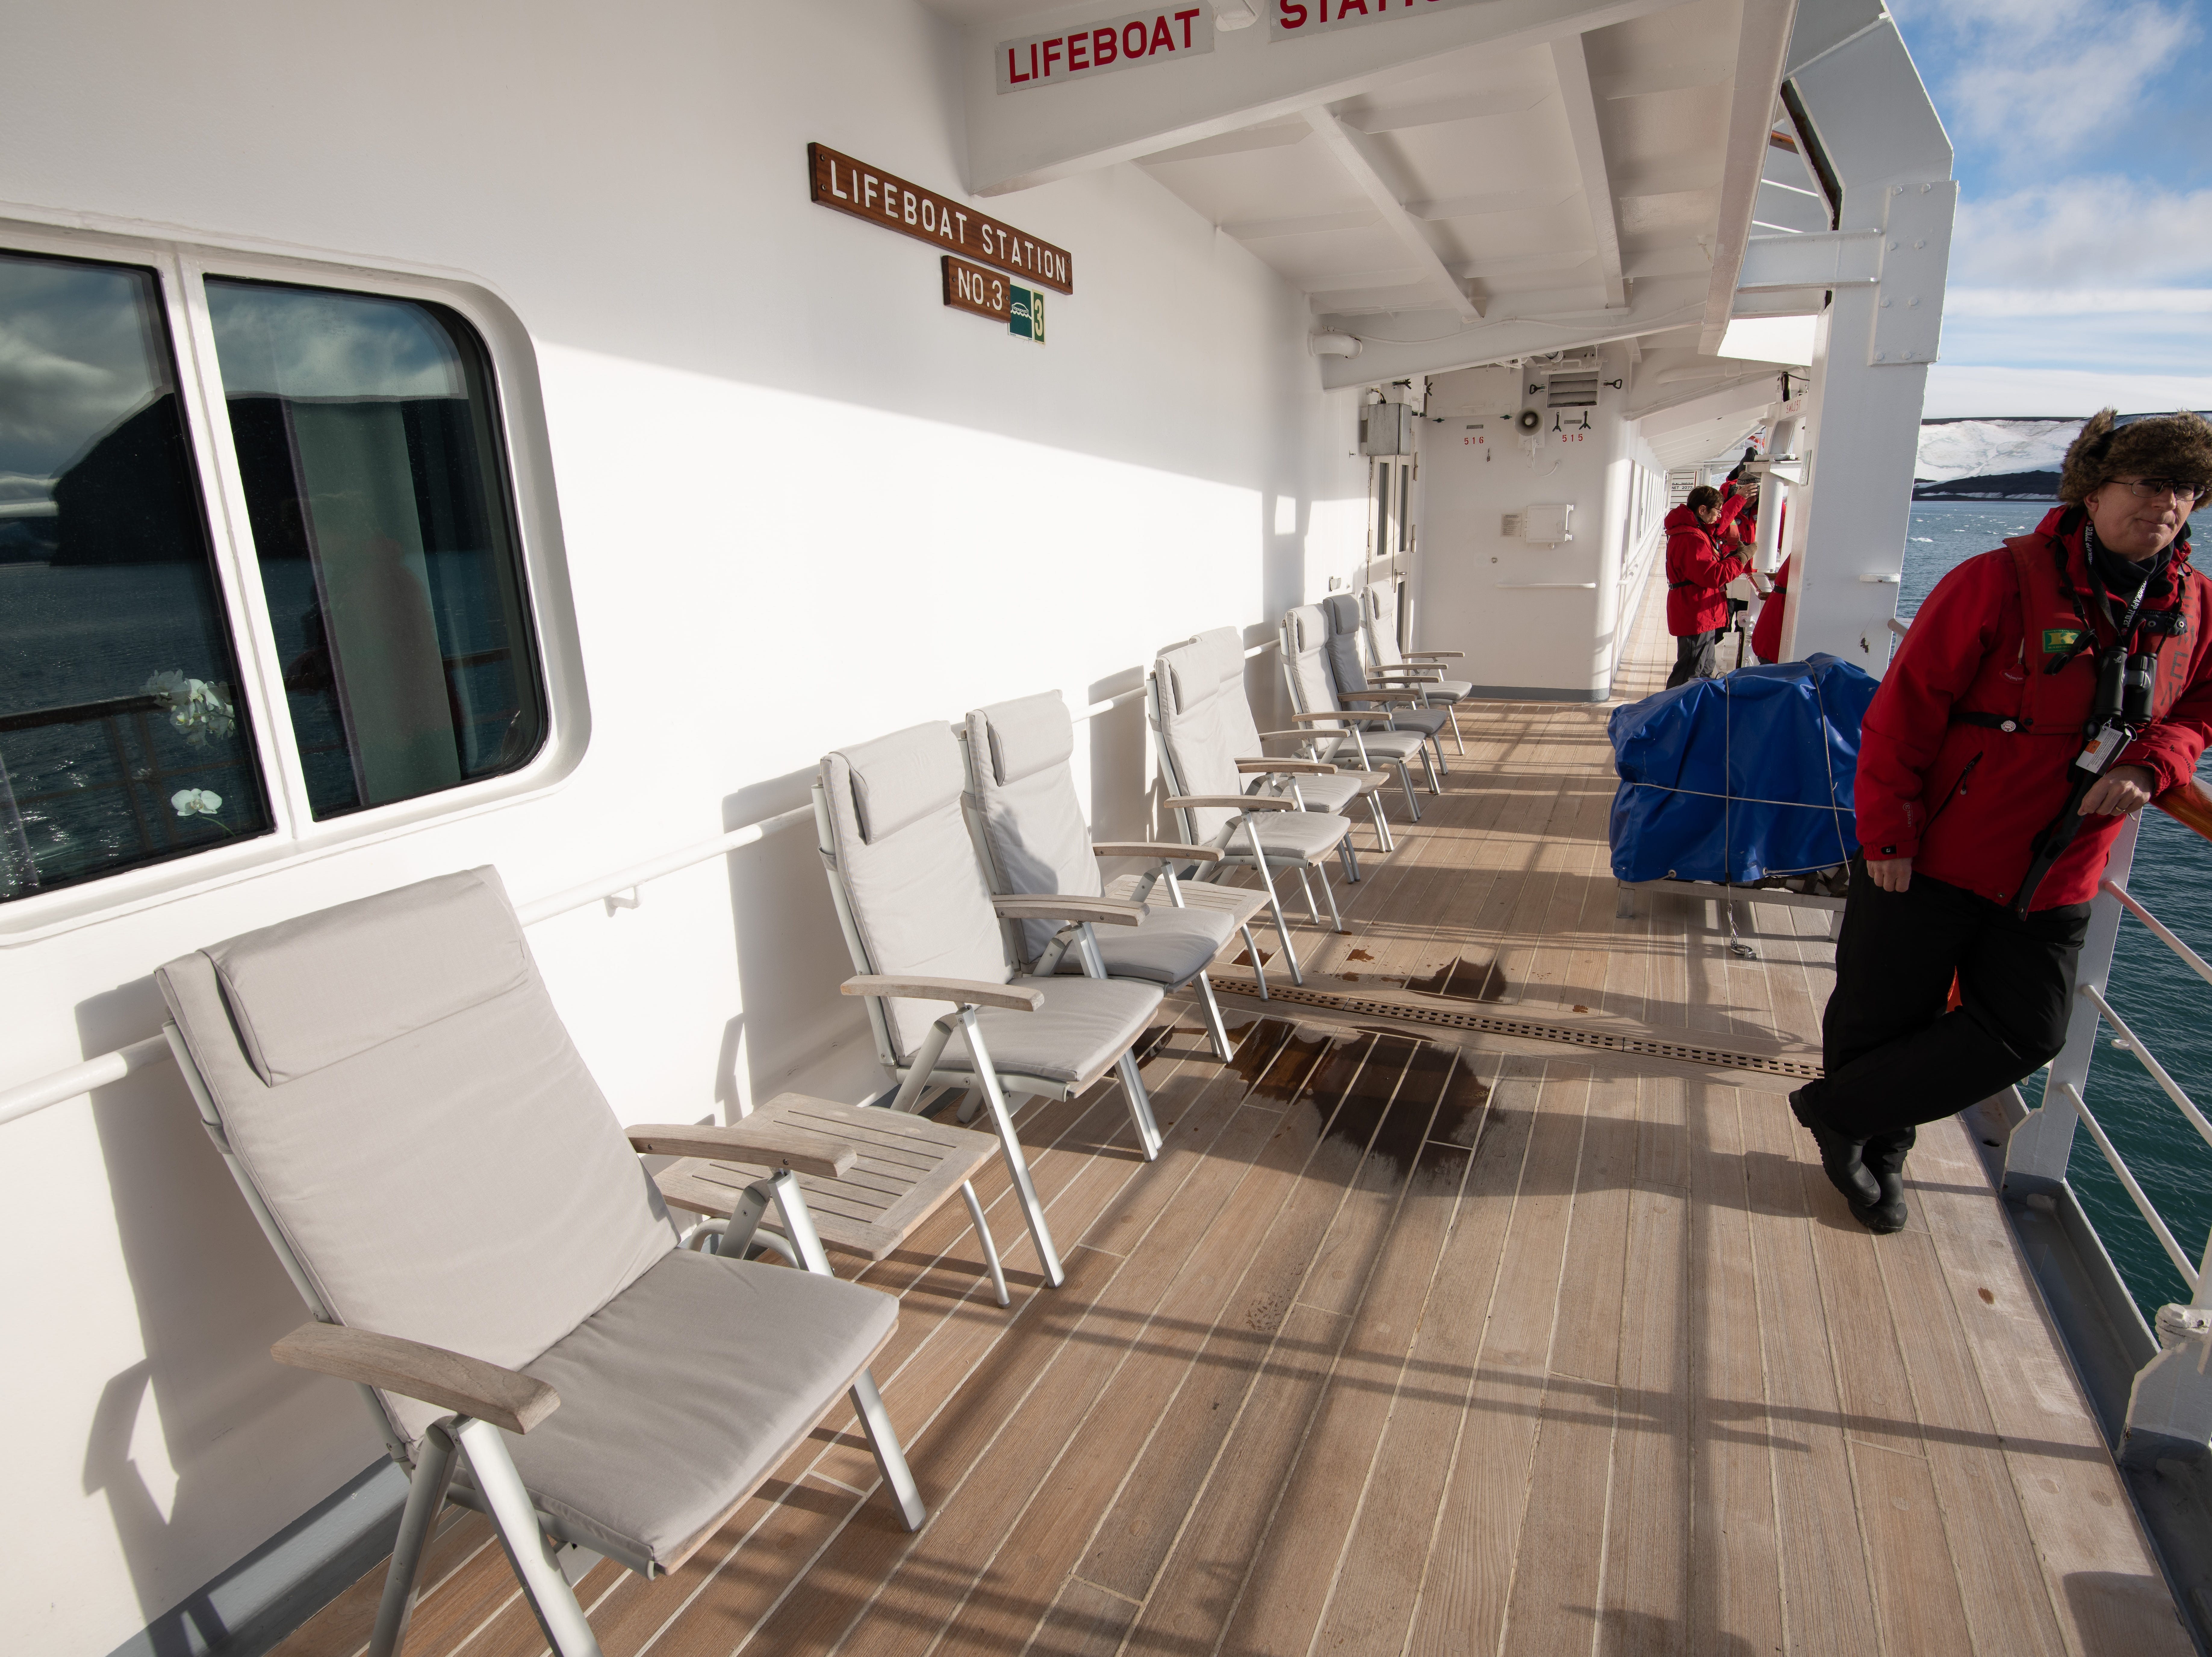 More outdoor seating can be found along Deck 5.